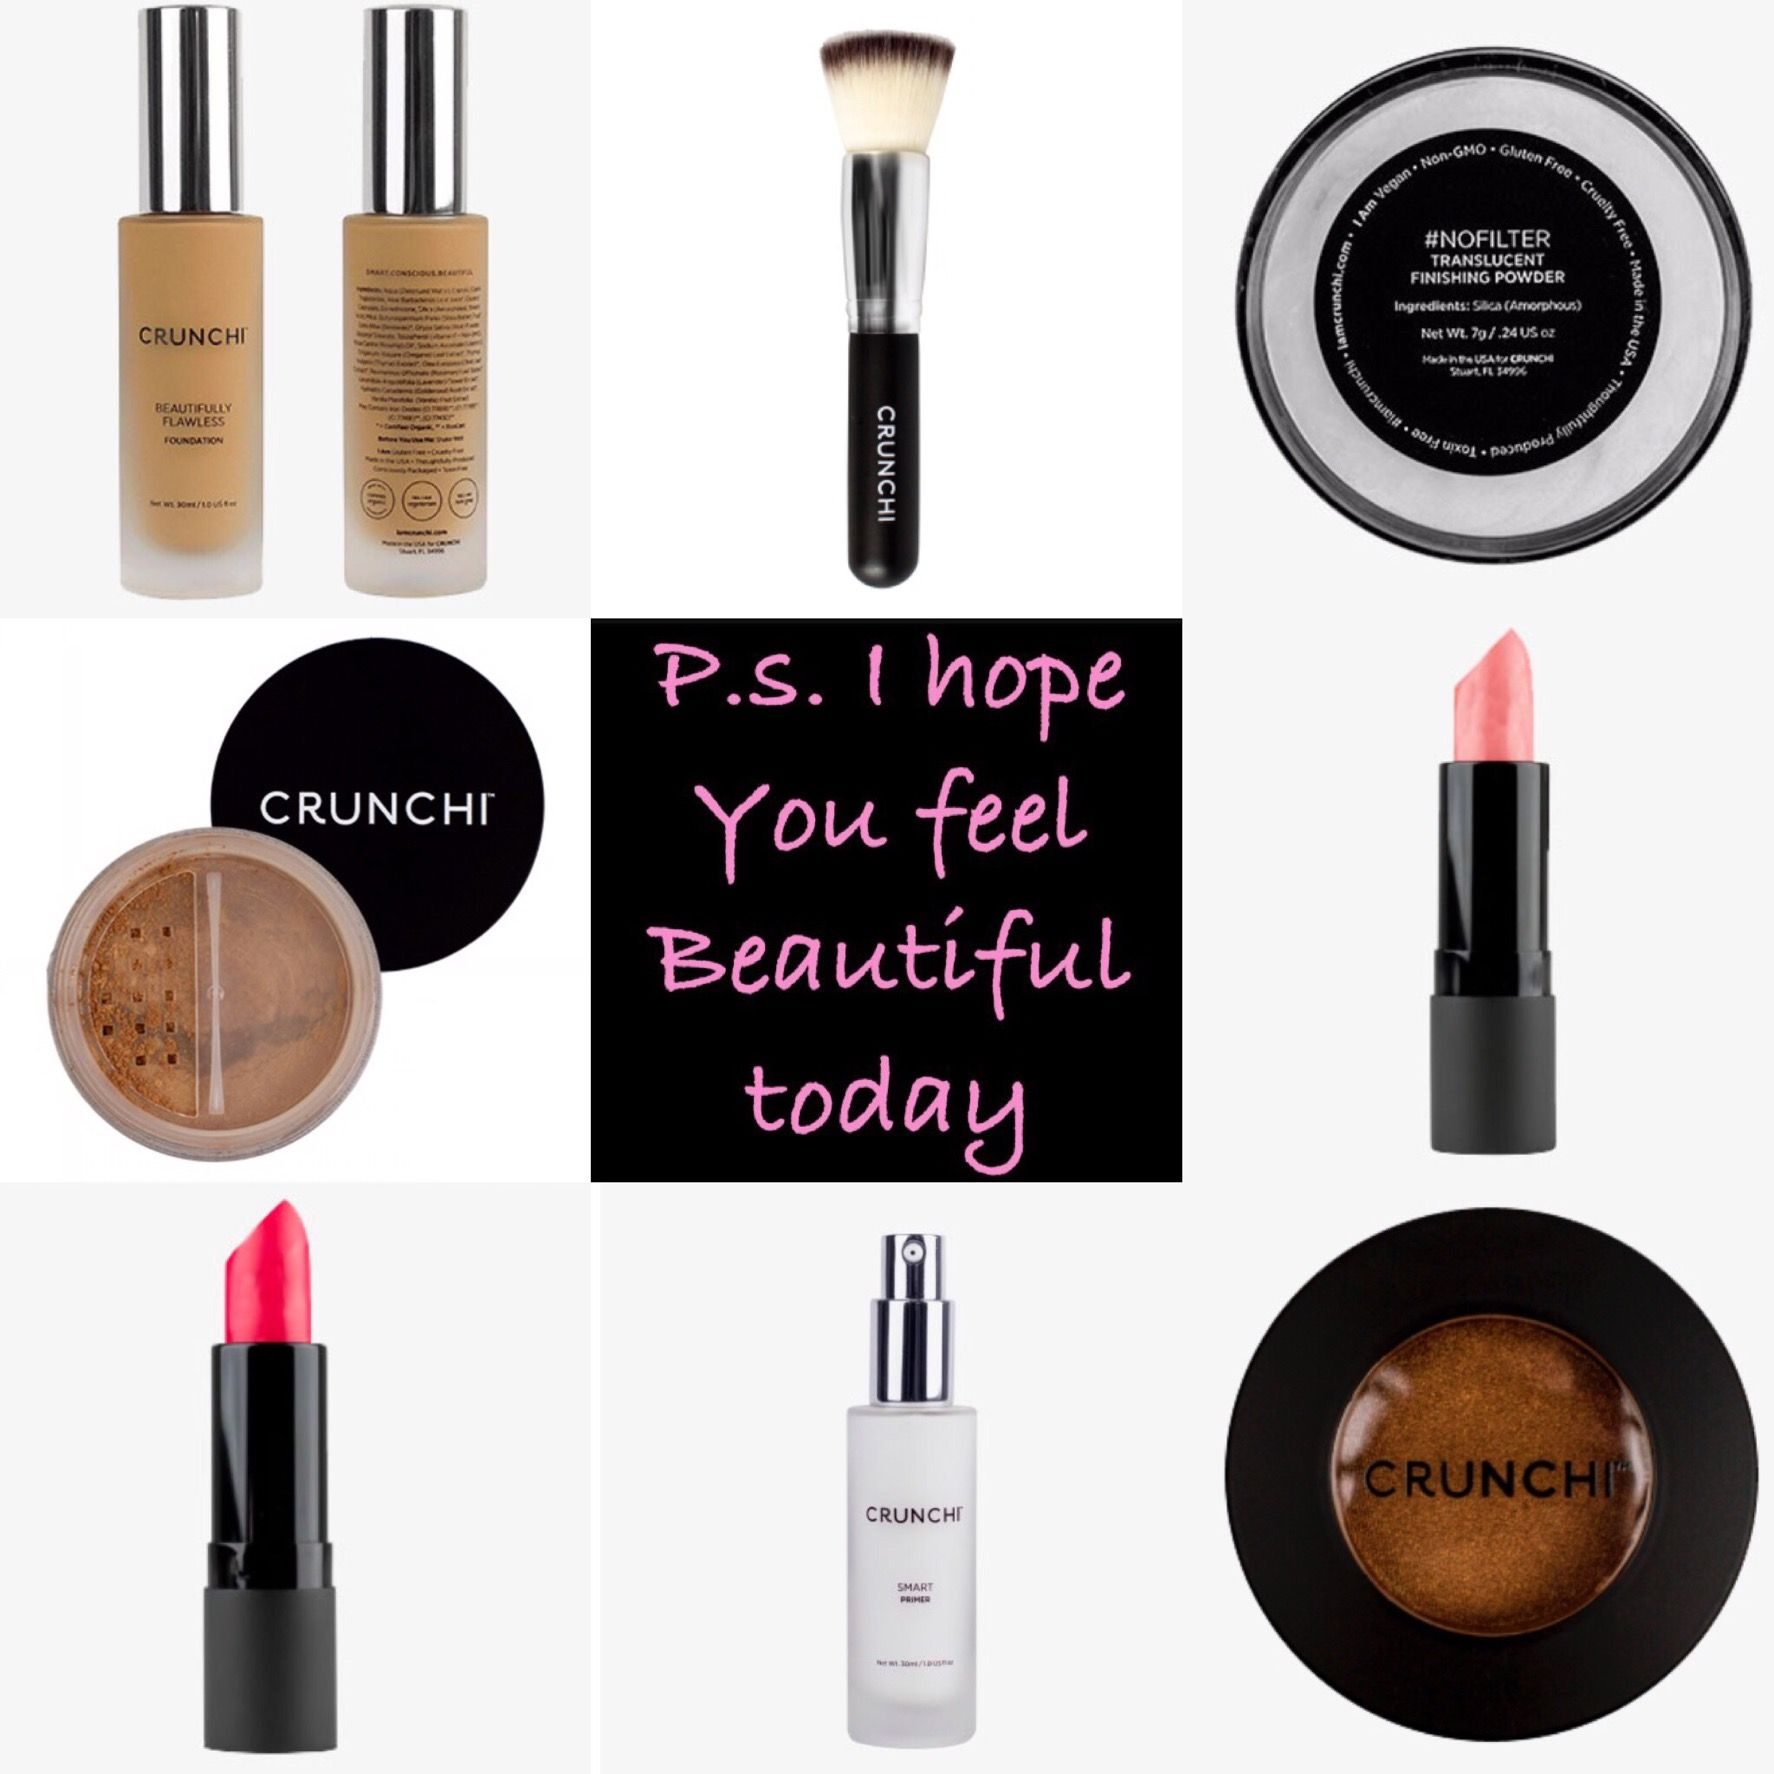 Toxic Free Makeup!! Your skin will thank you! Message me